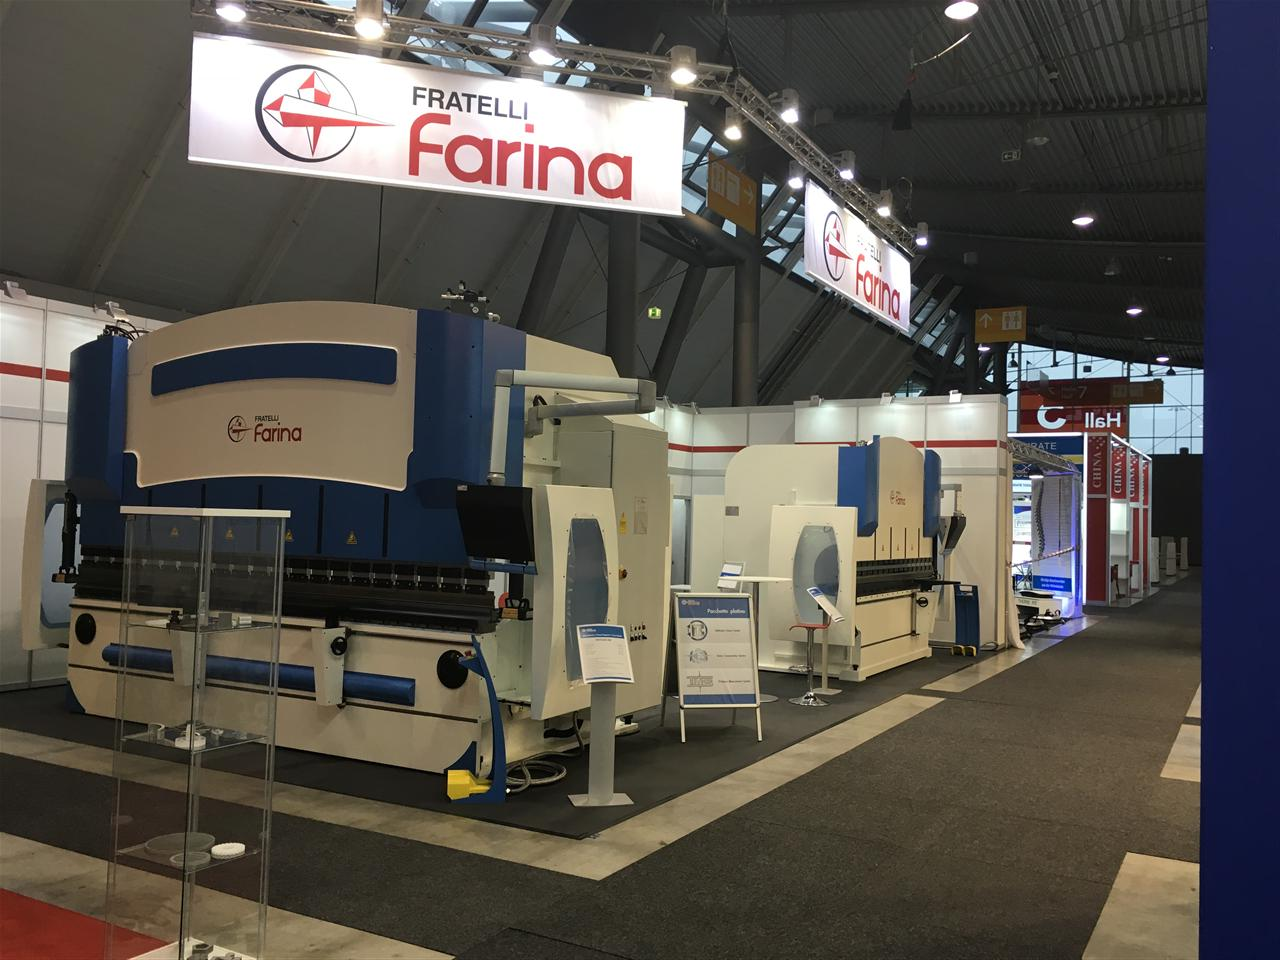 FRATELLI FARINA participated at BLECHEXPO